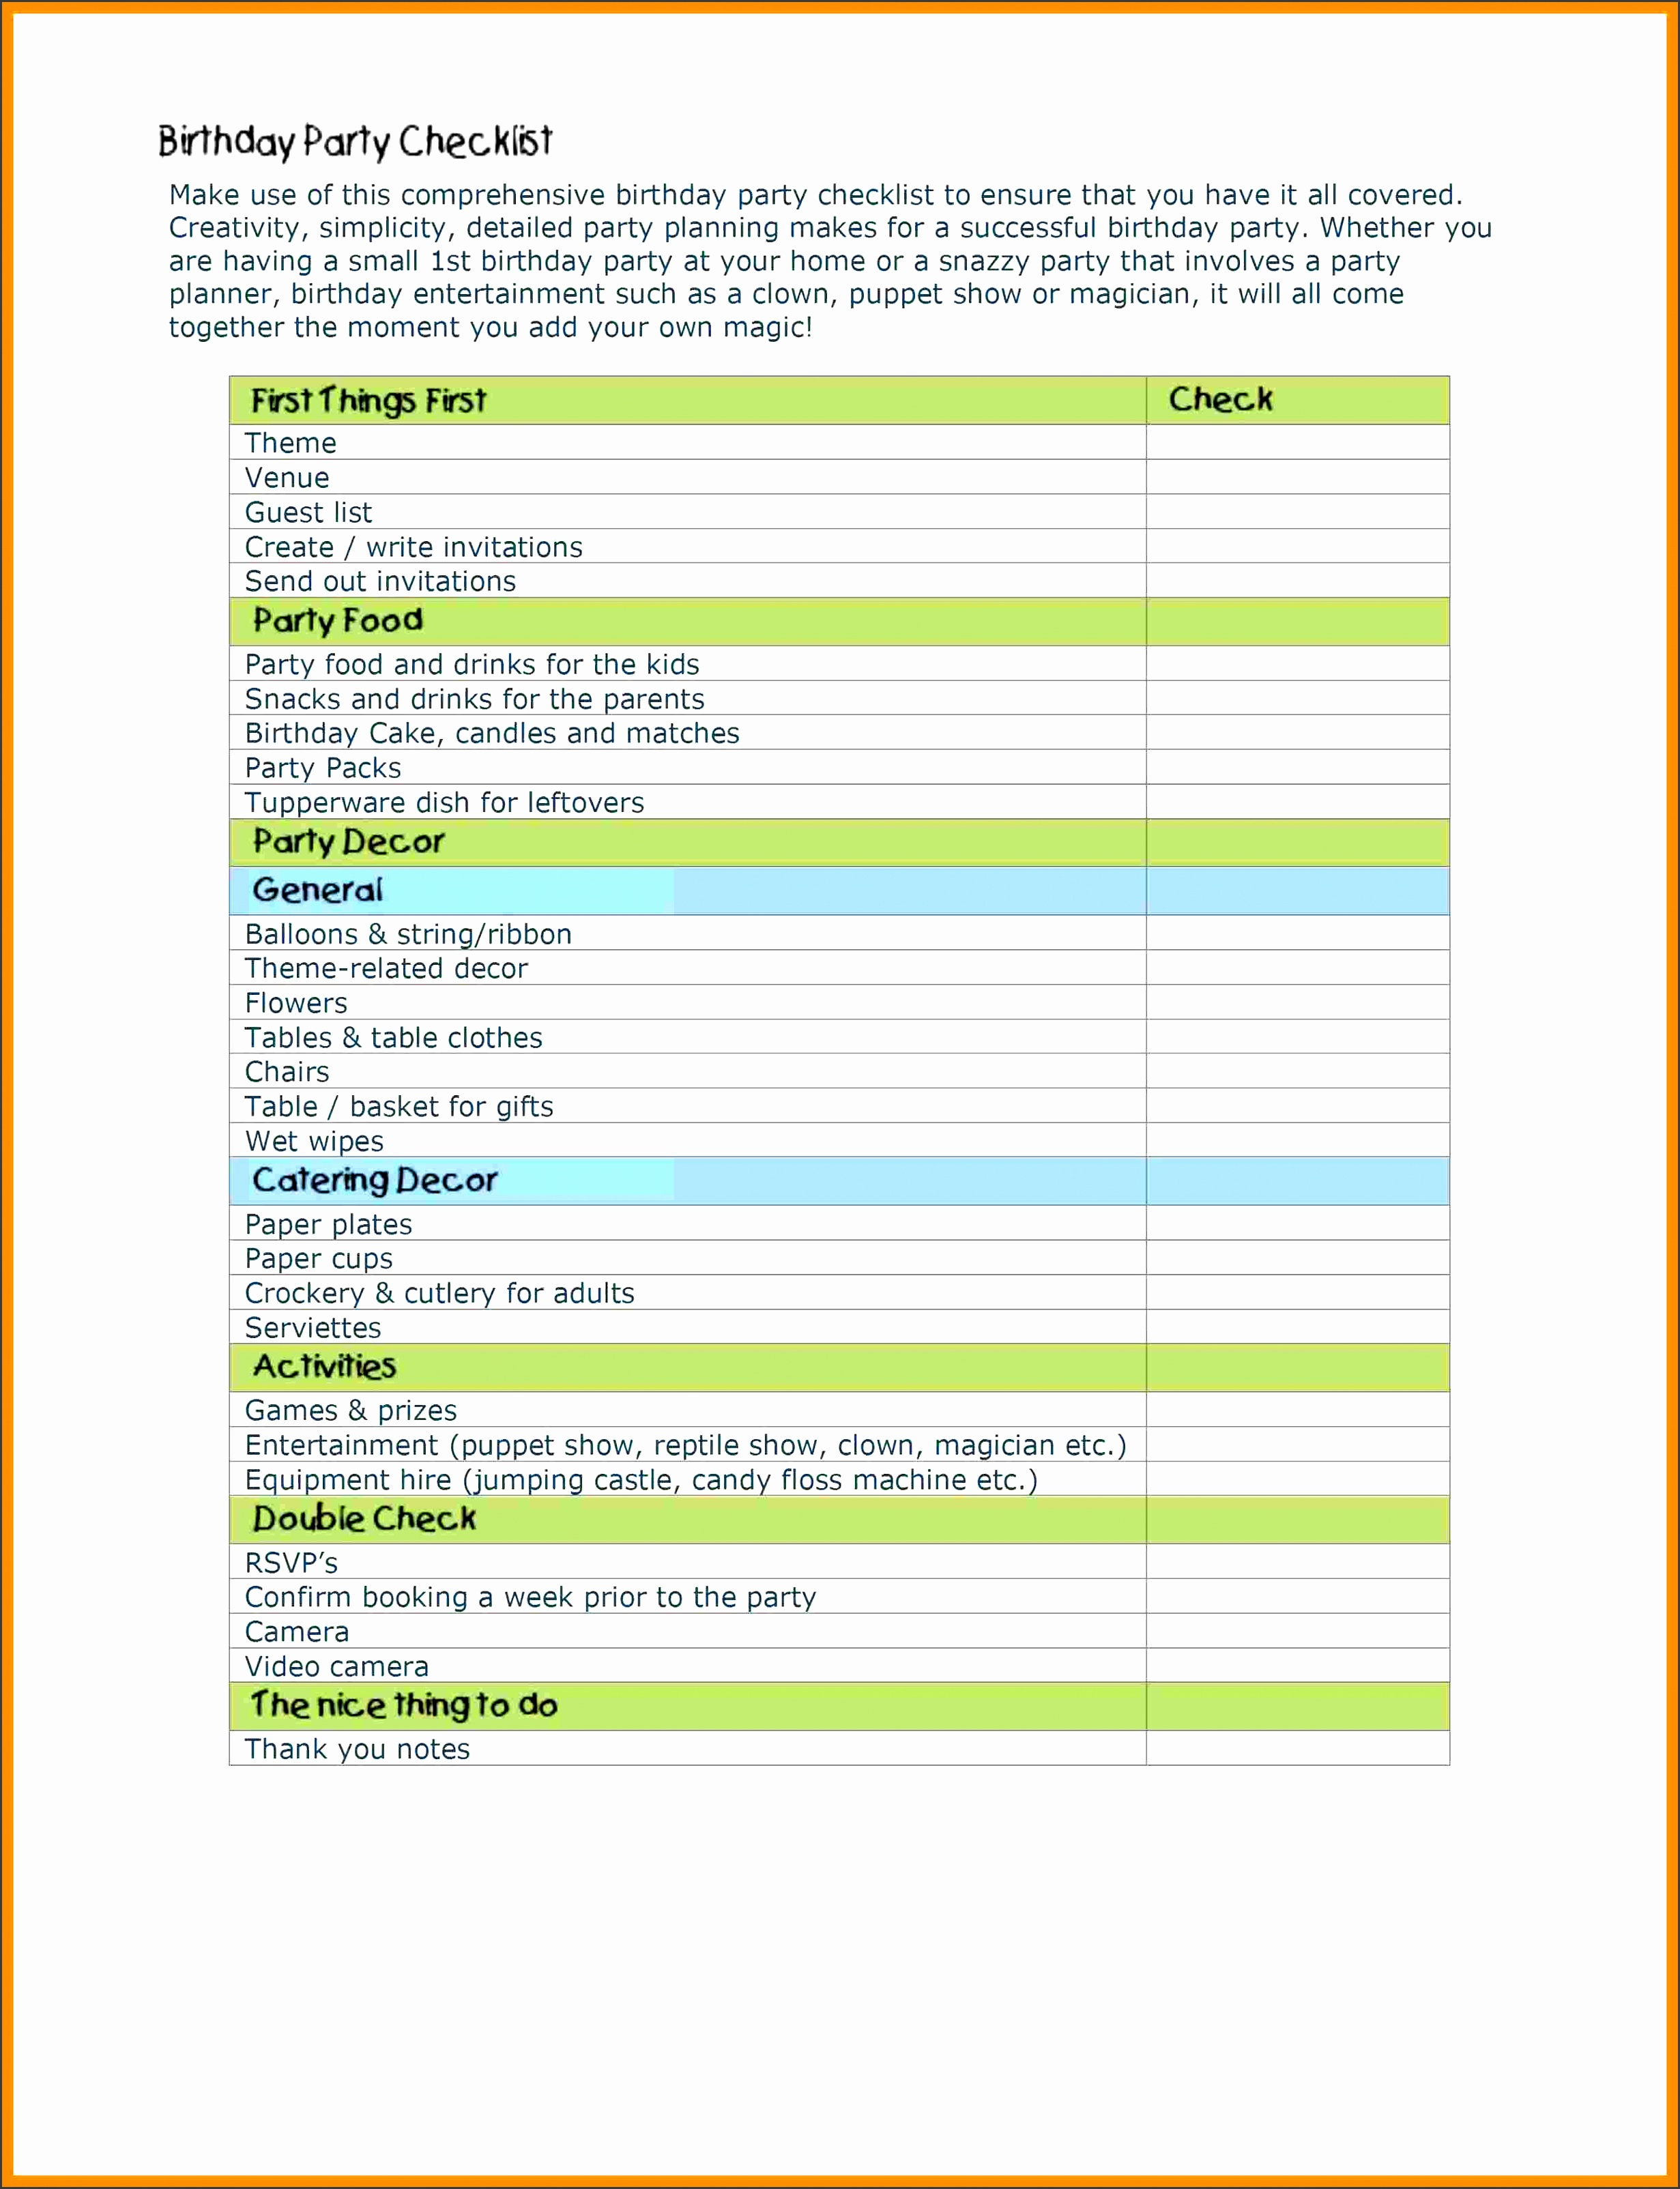 birthday calendar 2017 2018 mes printable calendars list templates our free guest list template for word to manage your guests for a wedding